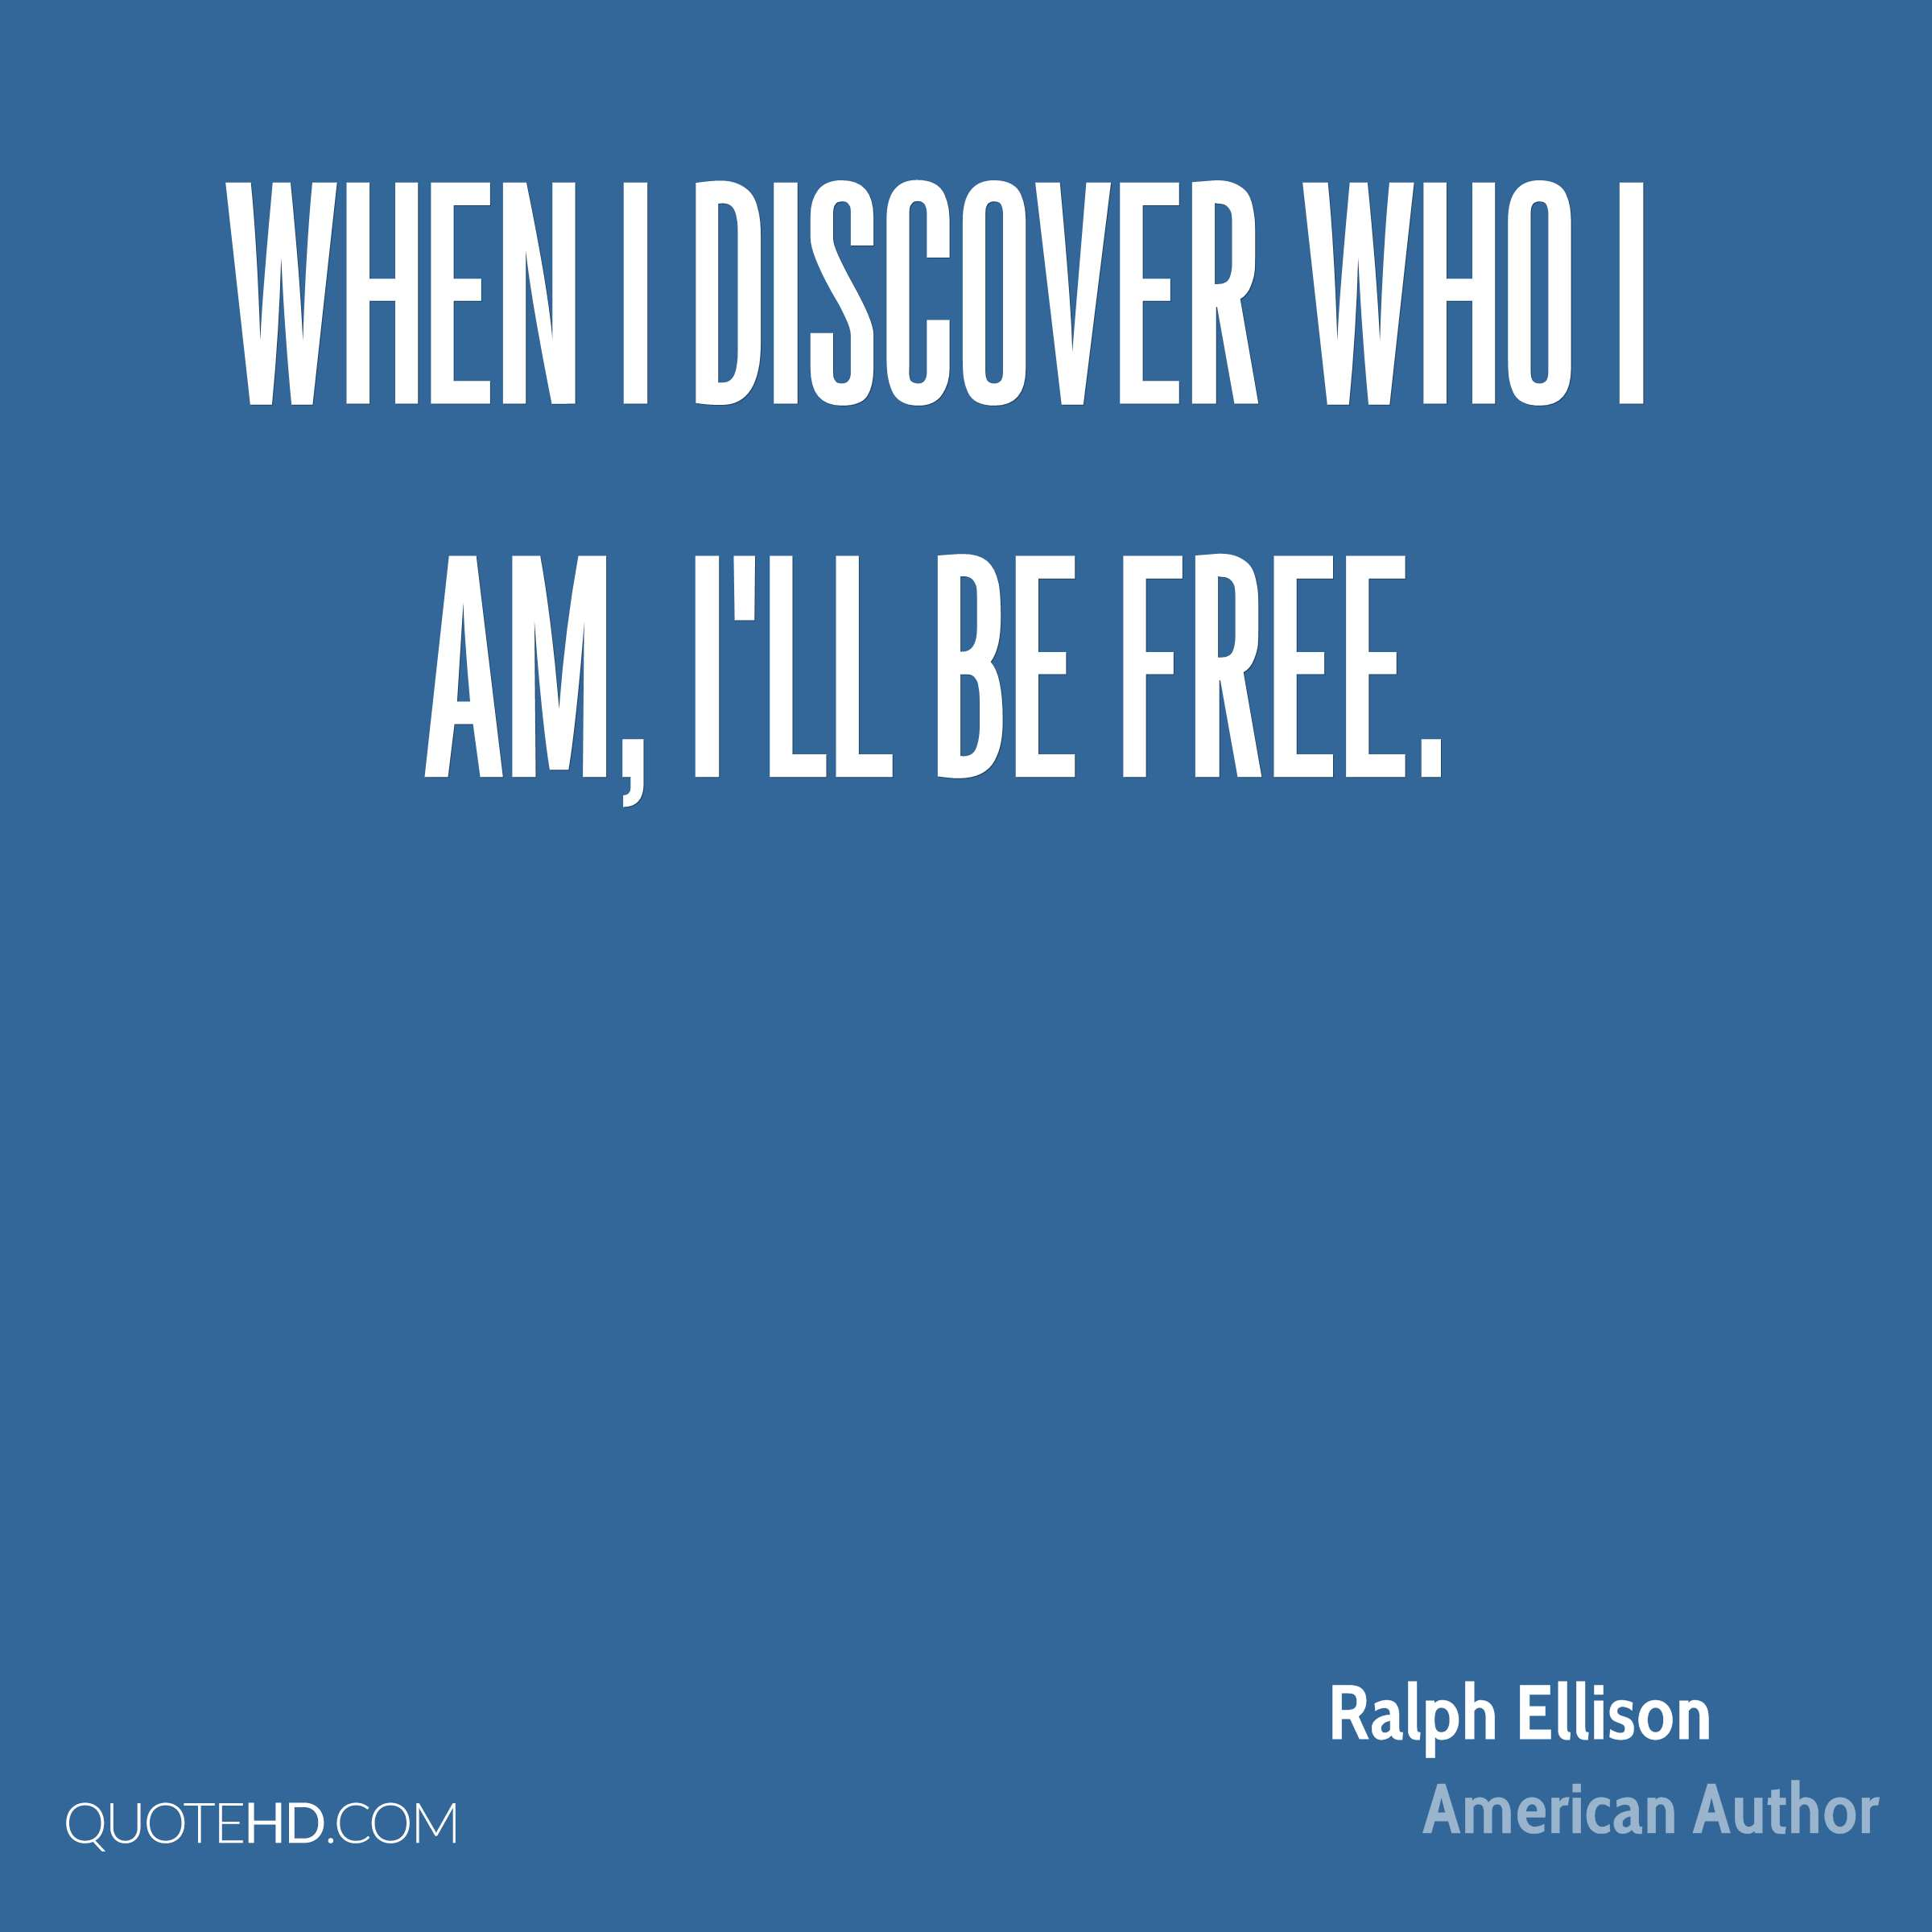 my thoughts on discovering who i am Come take a journey of self discovery and discover who you are  and who you can become  writing down your thoughts, ideas, insights and deepest desires has a .